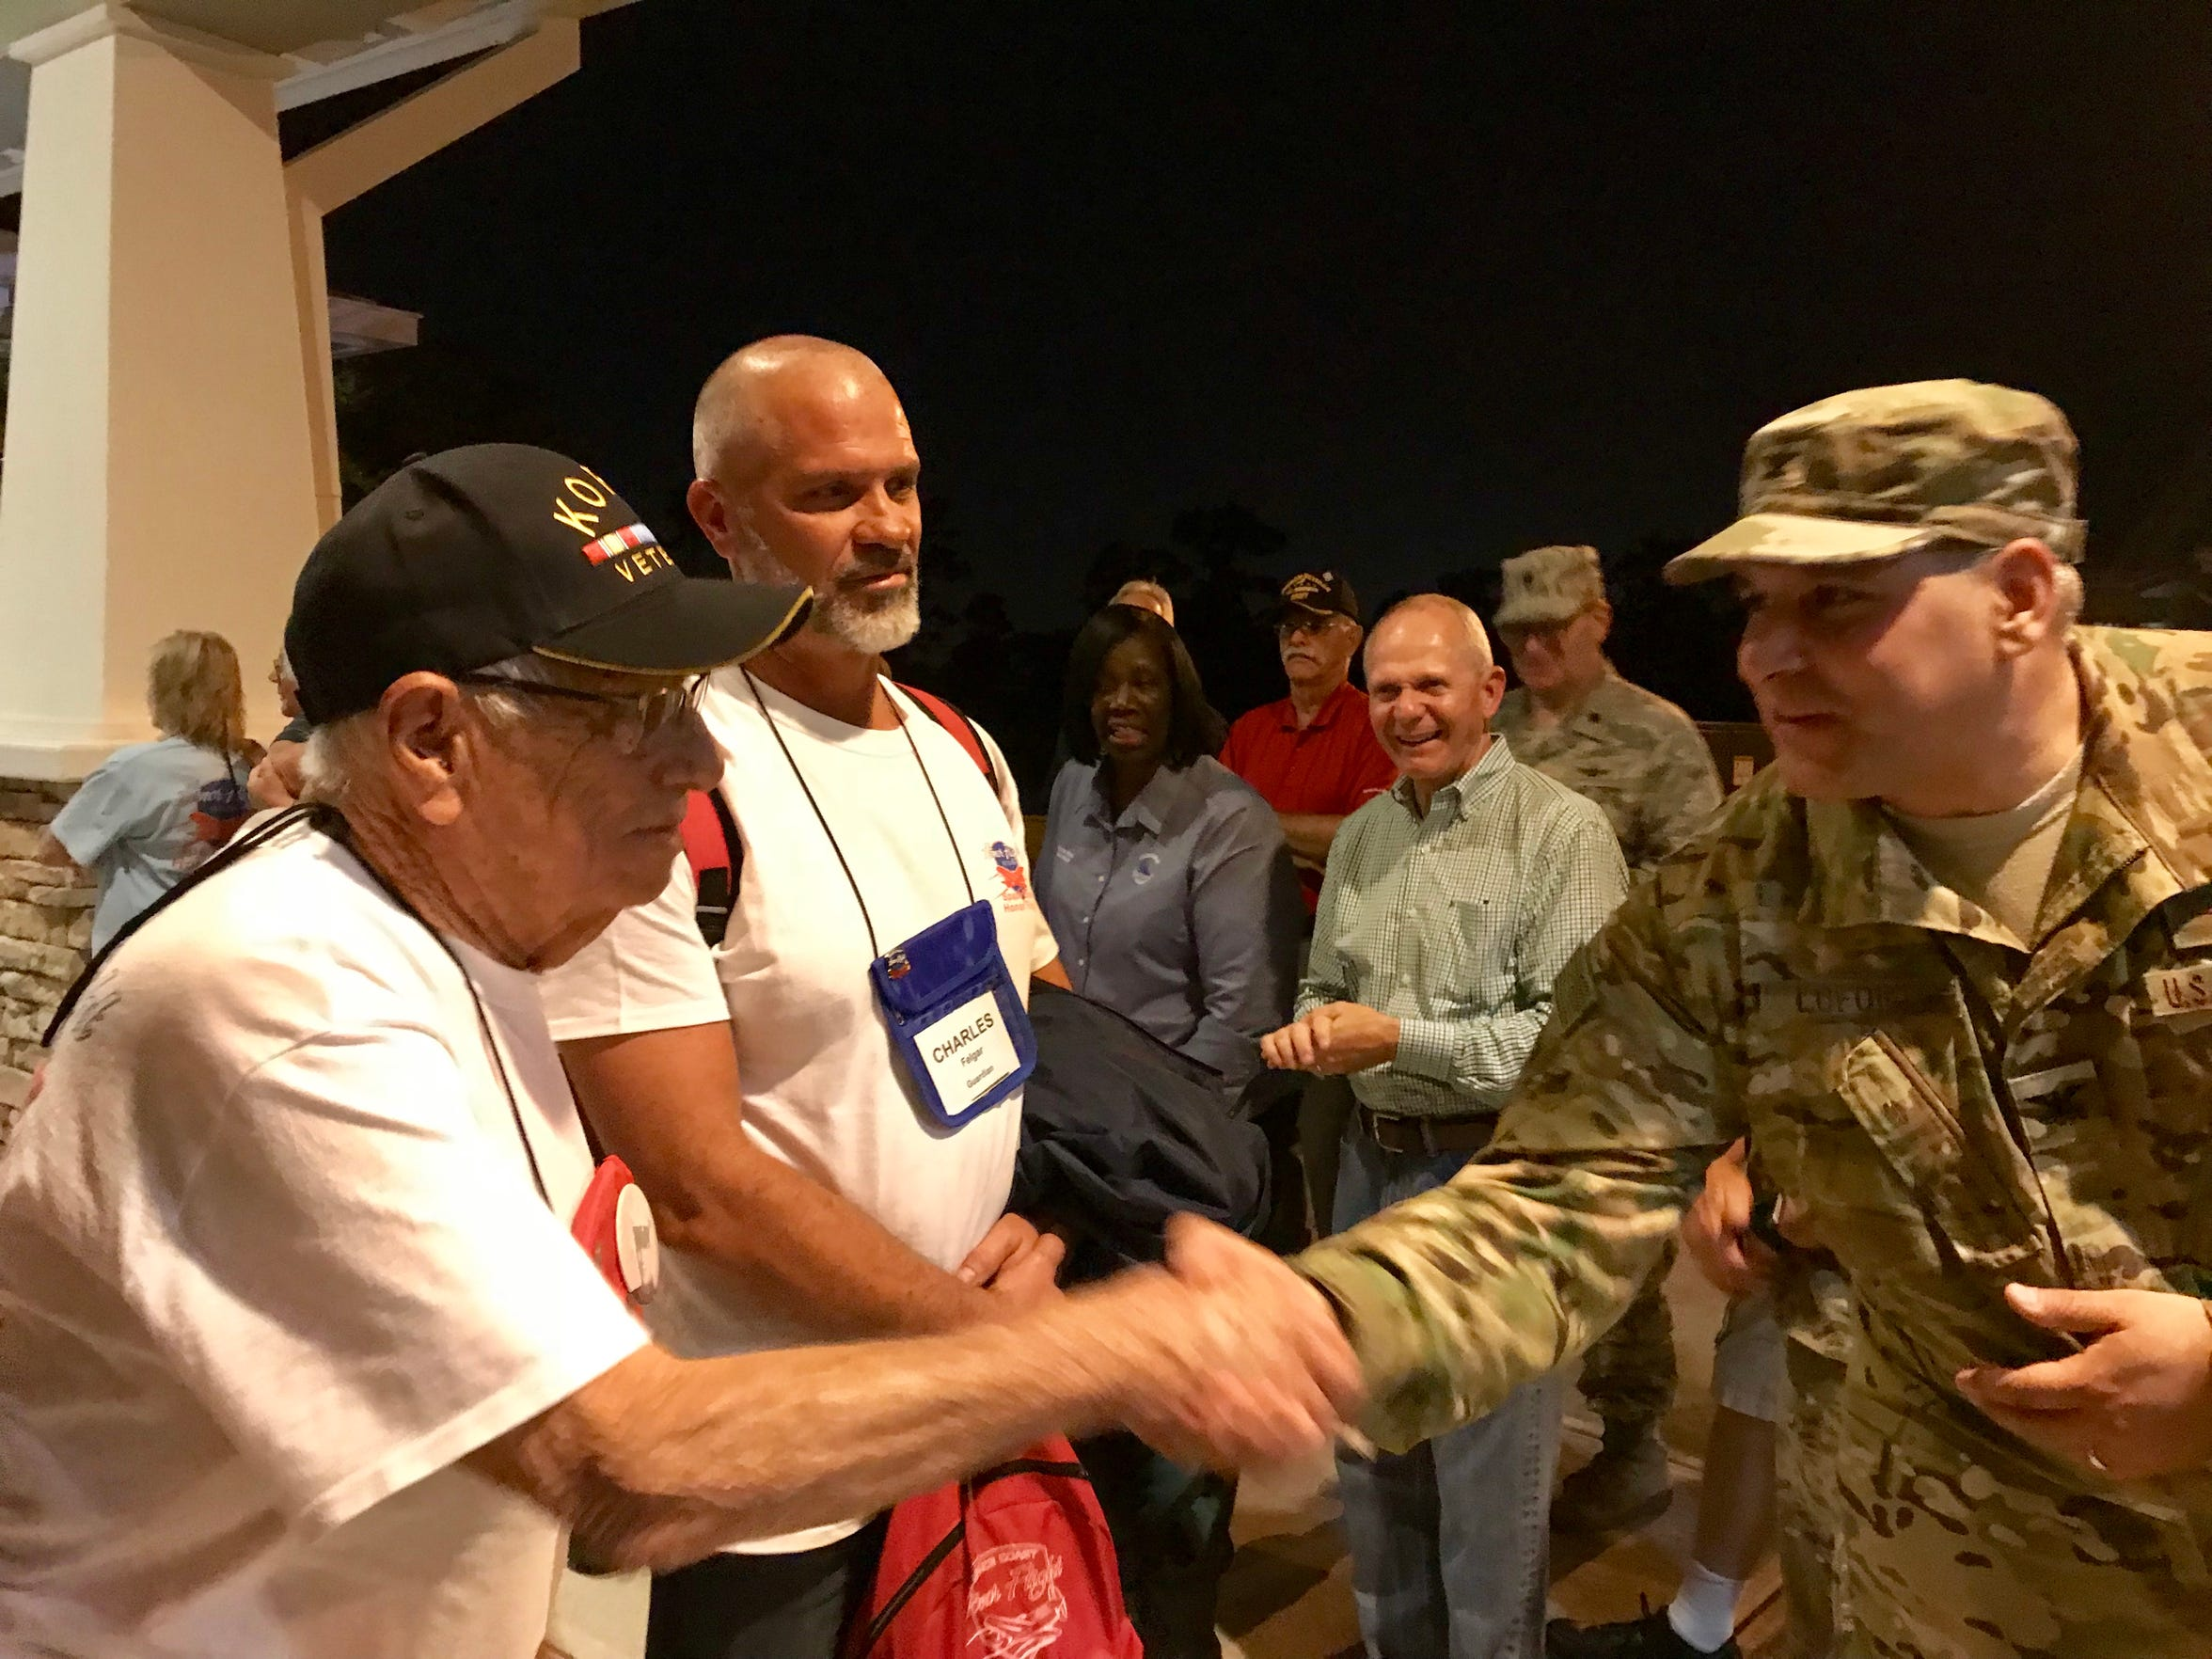 Korean War veteran Charles Felgar shakes hands with Air Force Col. Mike LoForti, commander of the 920th Operations Group at Patrick Air Force Base, outside the Wickham Park Senior Center.